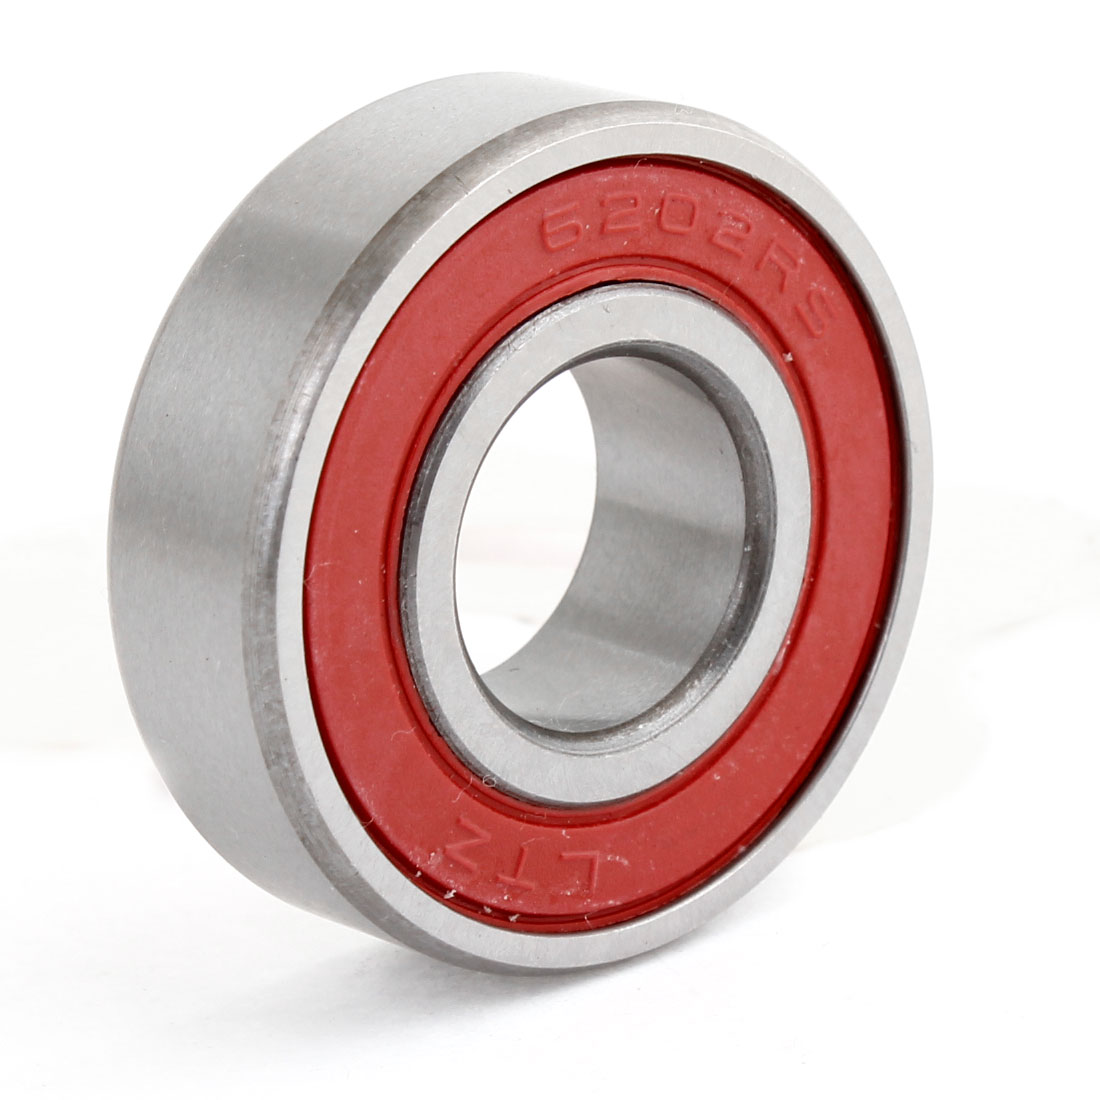 6202 2RS Sealed Deep Groove Ball Bearing 15mm x 35mm x 11mm